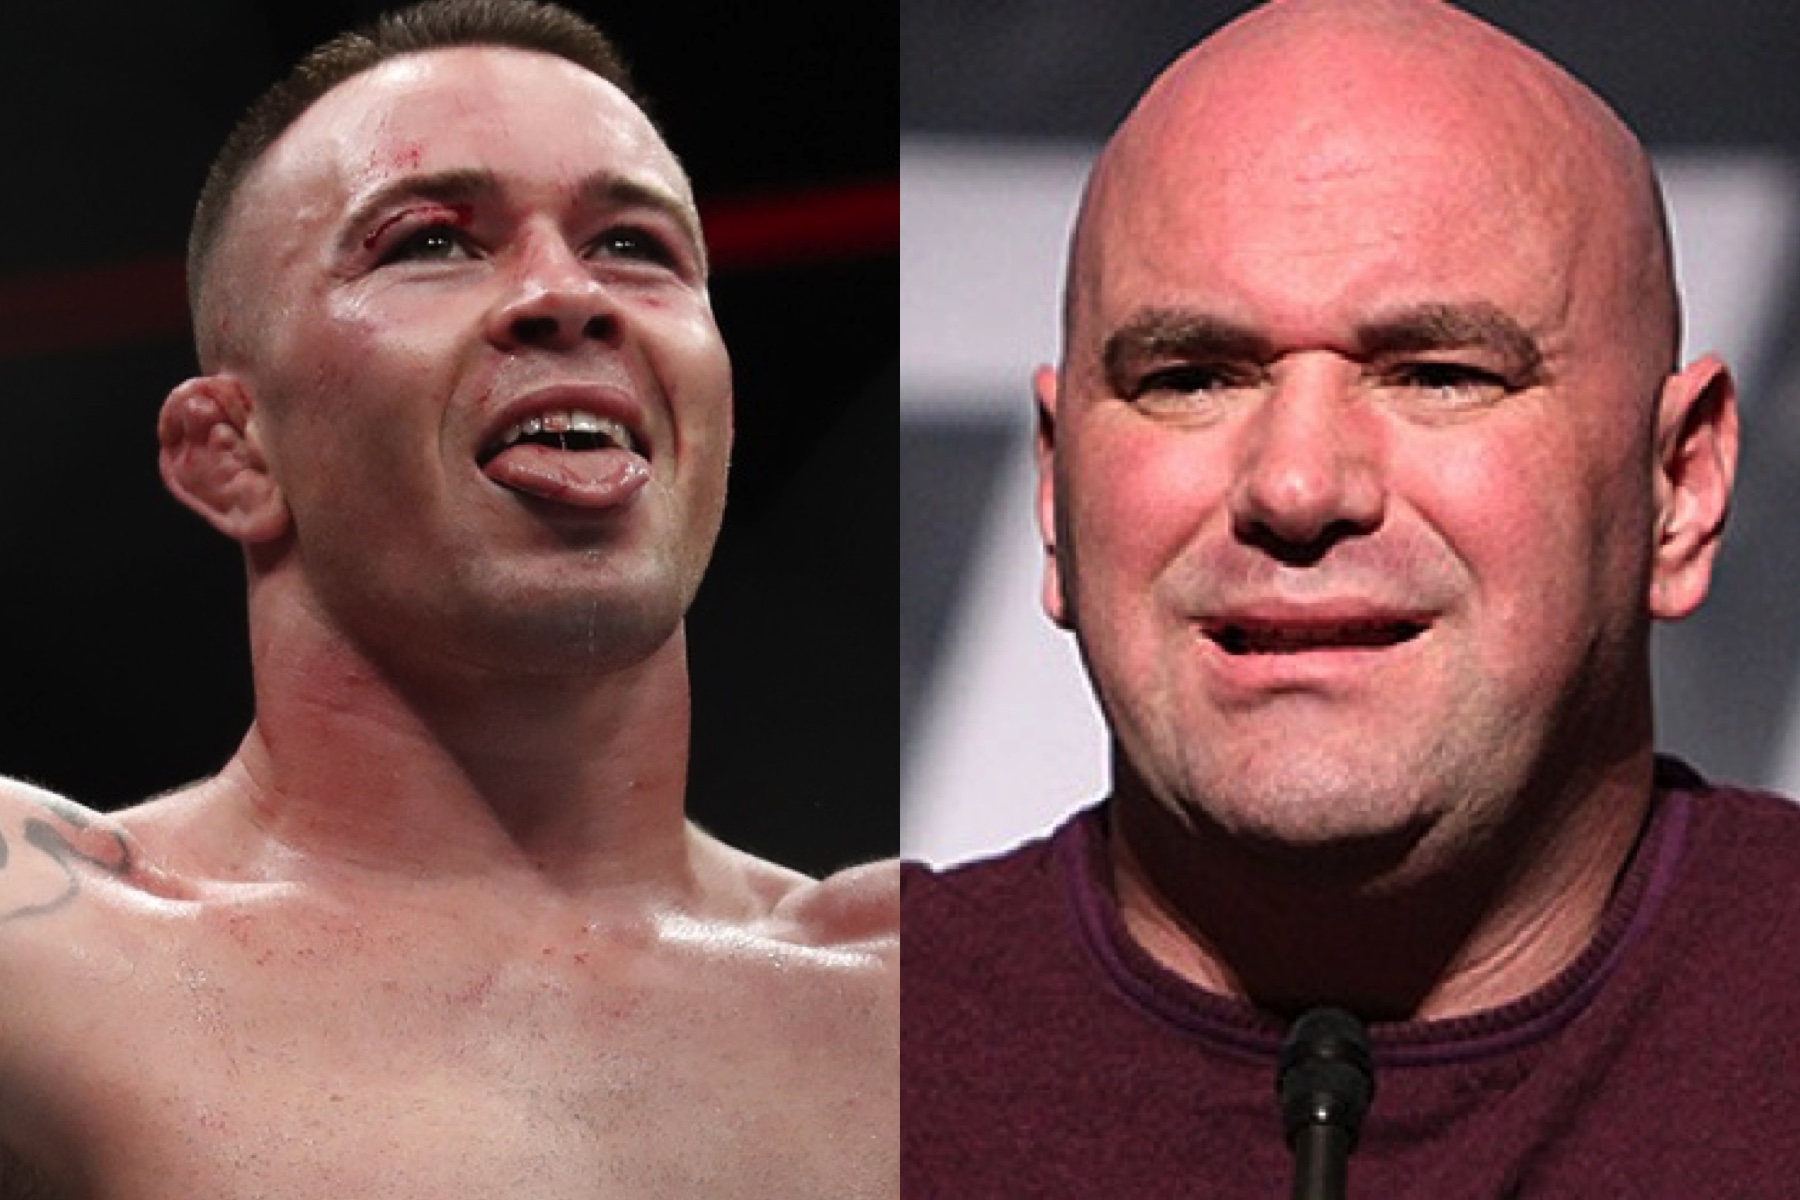 Colby Covington says he will slap Dana White in the face with UFC belt - Colby